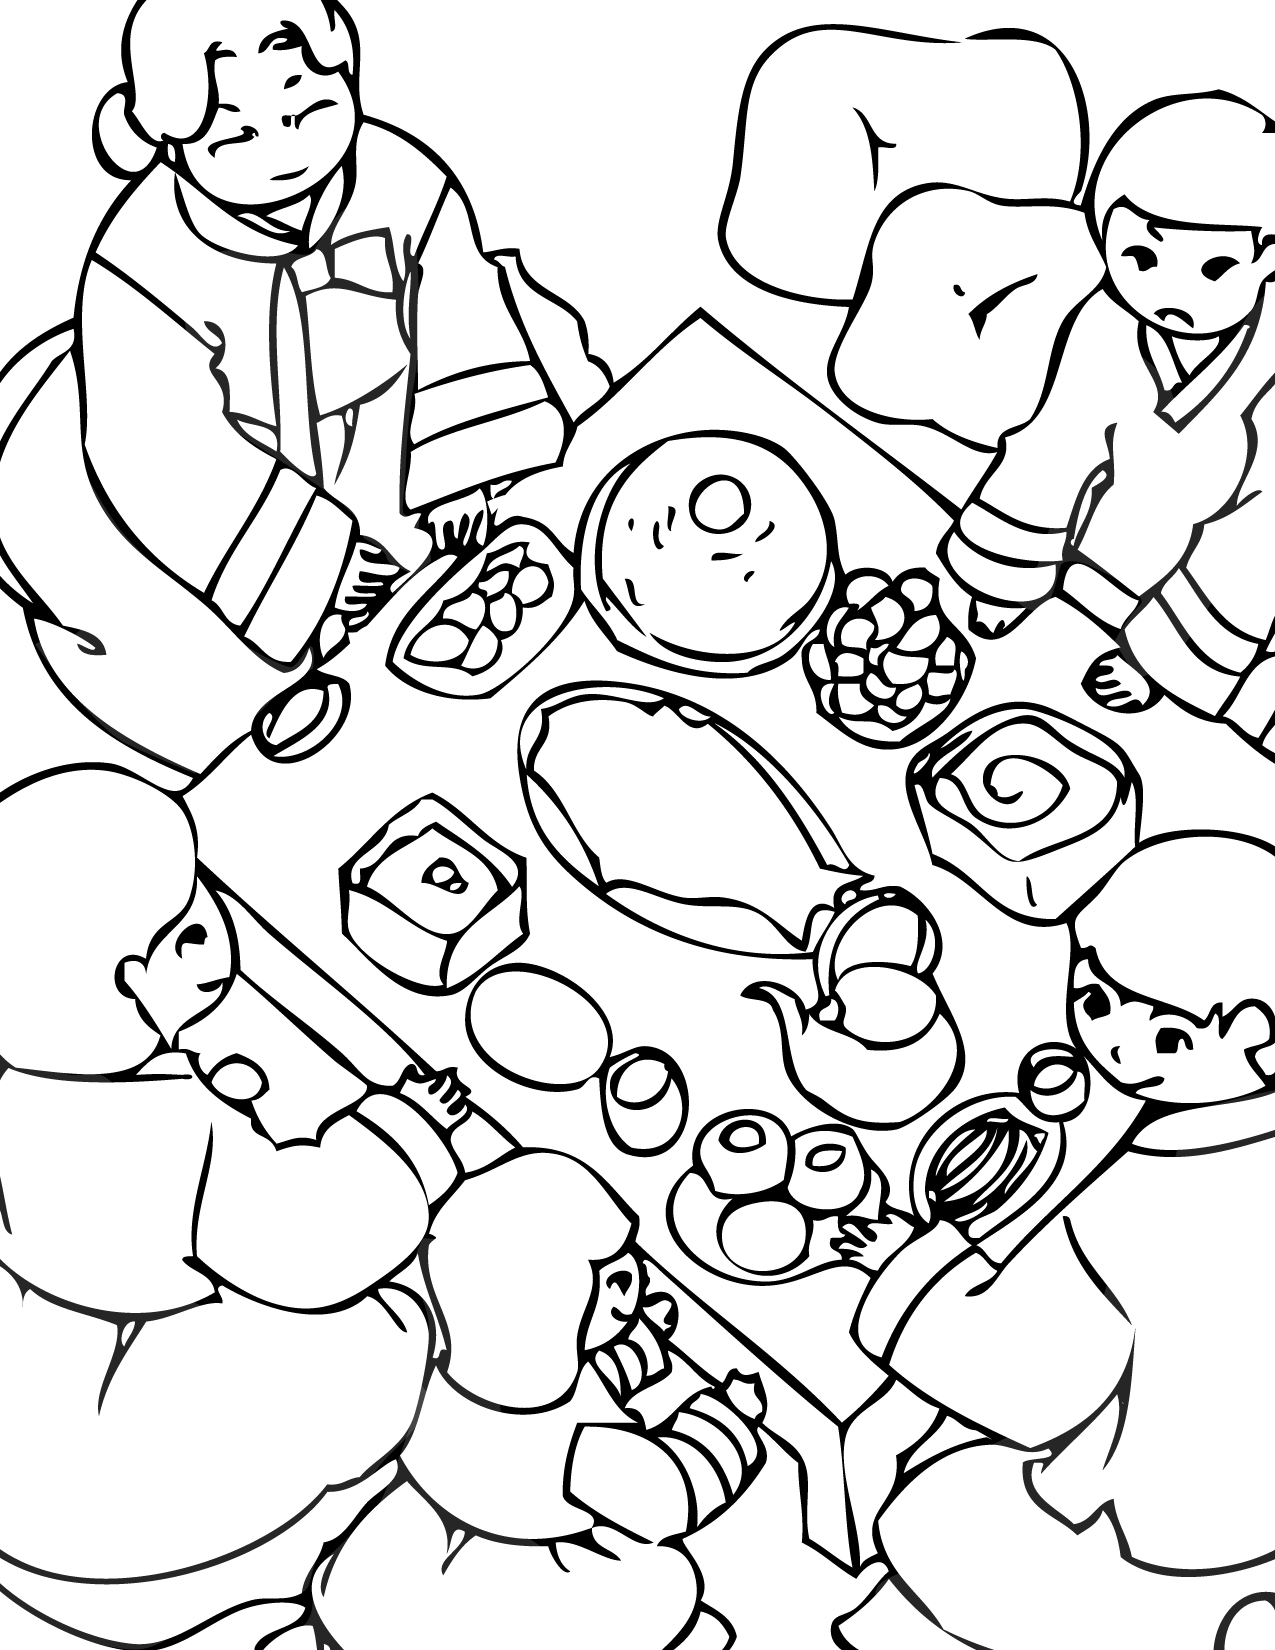 Kpop Coloring Pages At Getcolorings